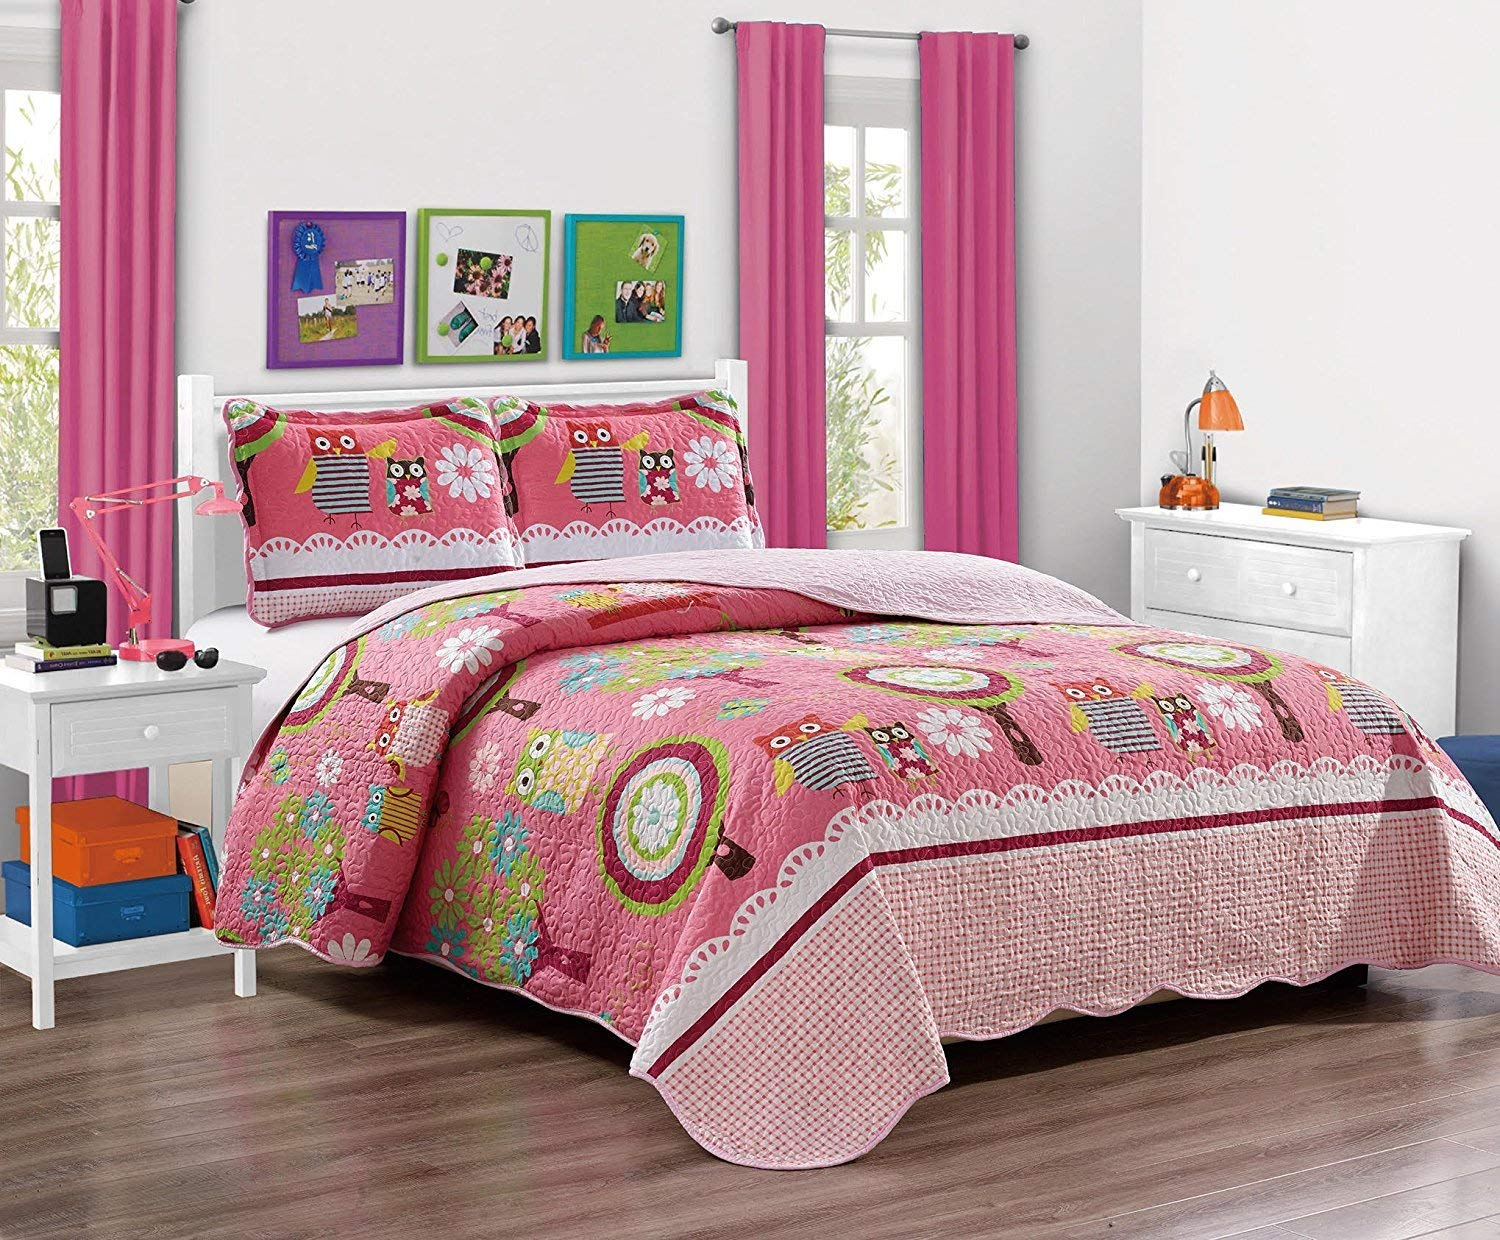 Fancy Collection 2pc Twin Size Quilted Bedspread Set Owls Flowers Pink Beige Green Blue White New #Owl Pink